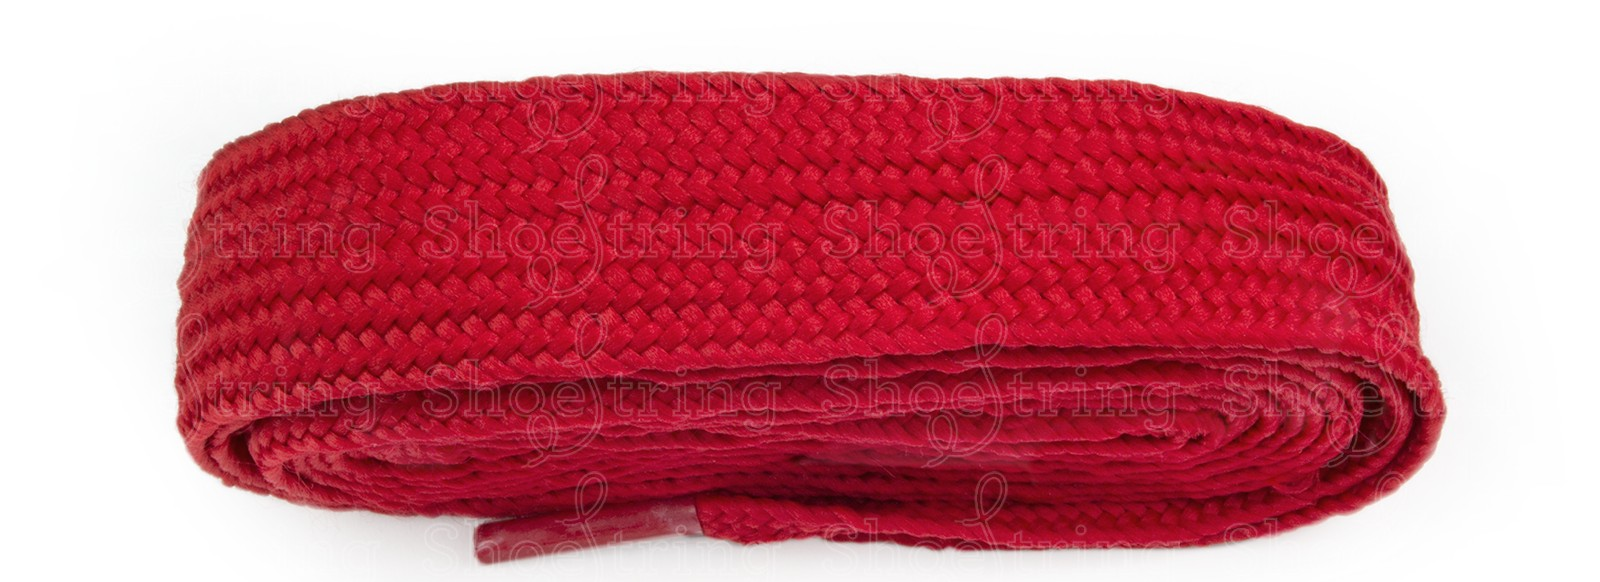 Red Crazy 140cm Wide Crazy Banded~